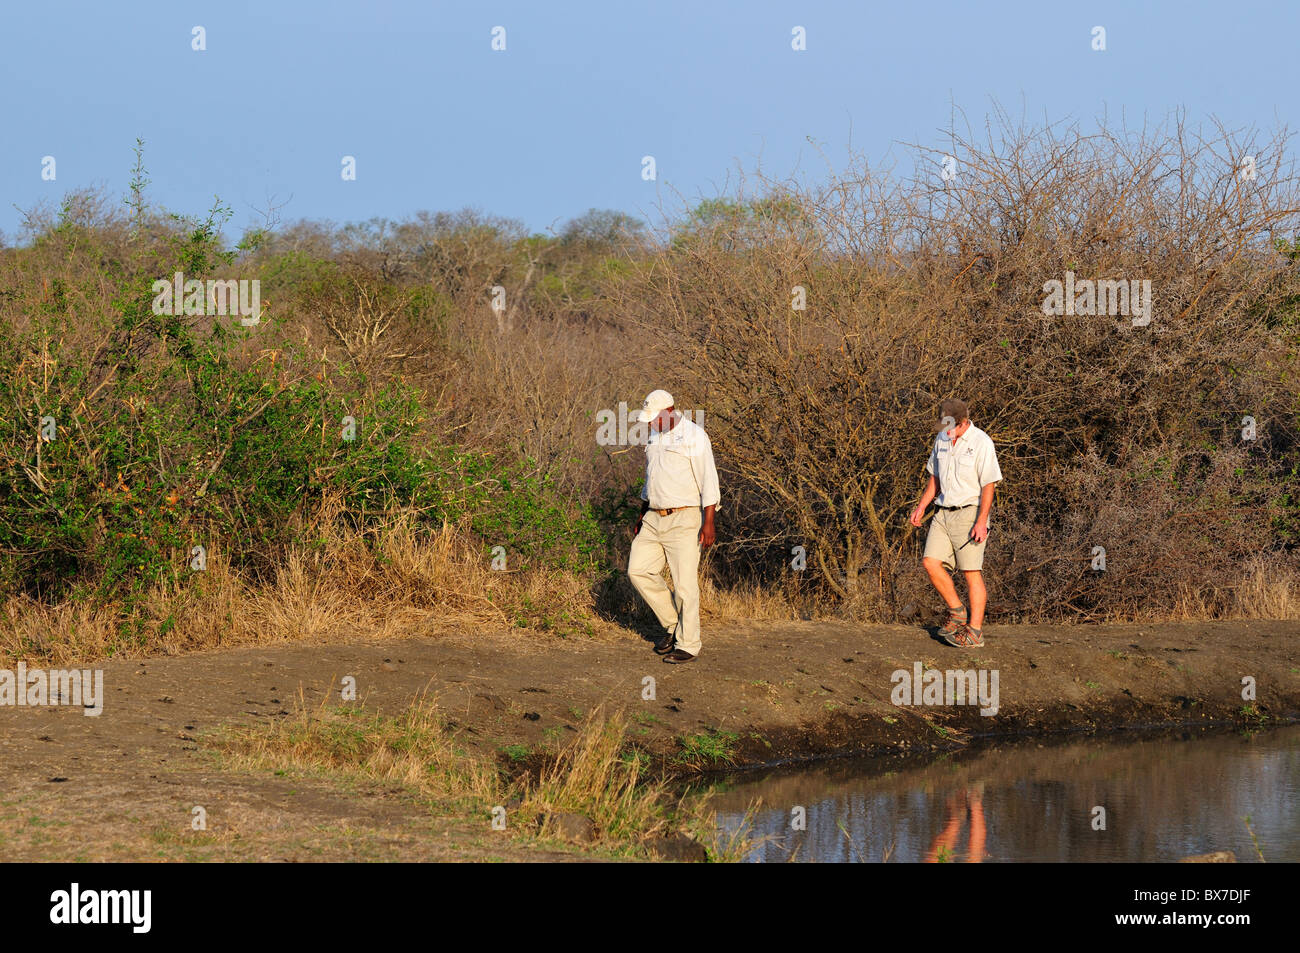 Park ranger and tracker looking for animal track around a water hole. Kruger National Park, South Africa. - Stock Image